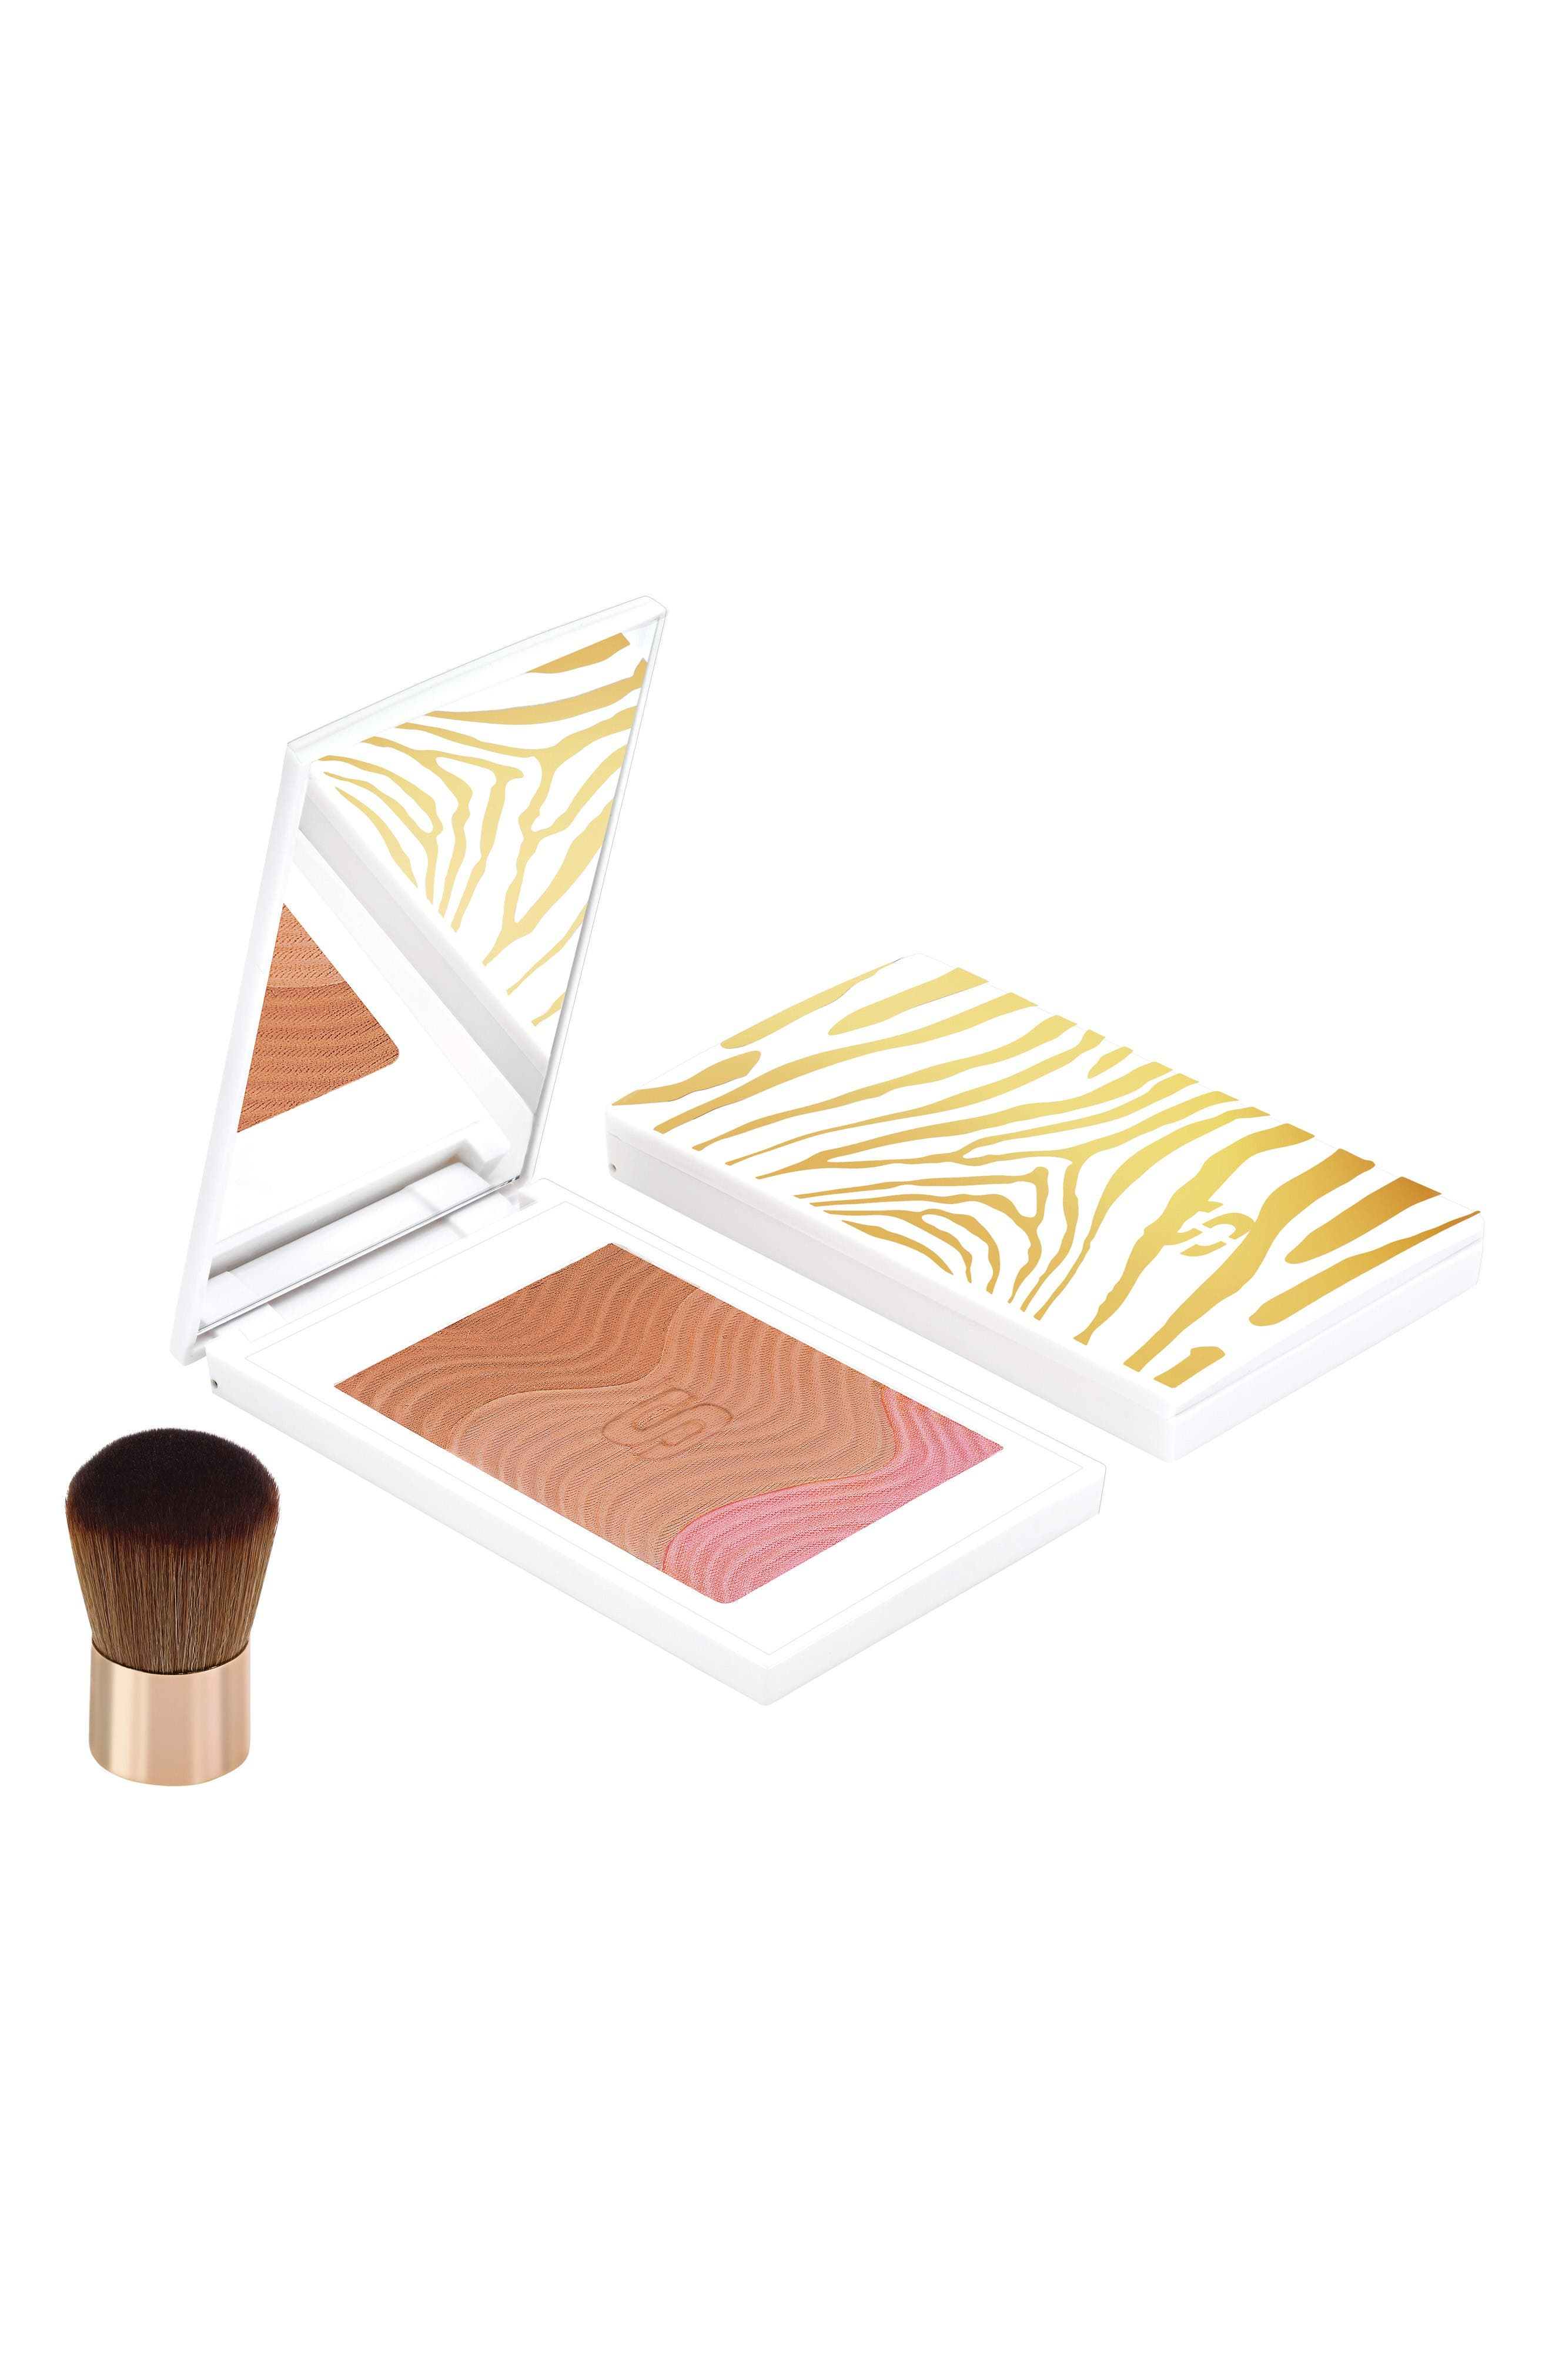 Phyto-Touche Sun Glow Powder,                             Main thumbnail 1, color,                             Miel Canelle